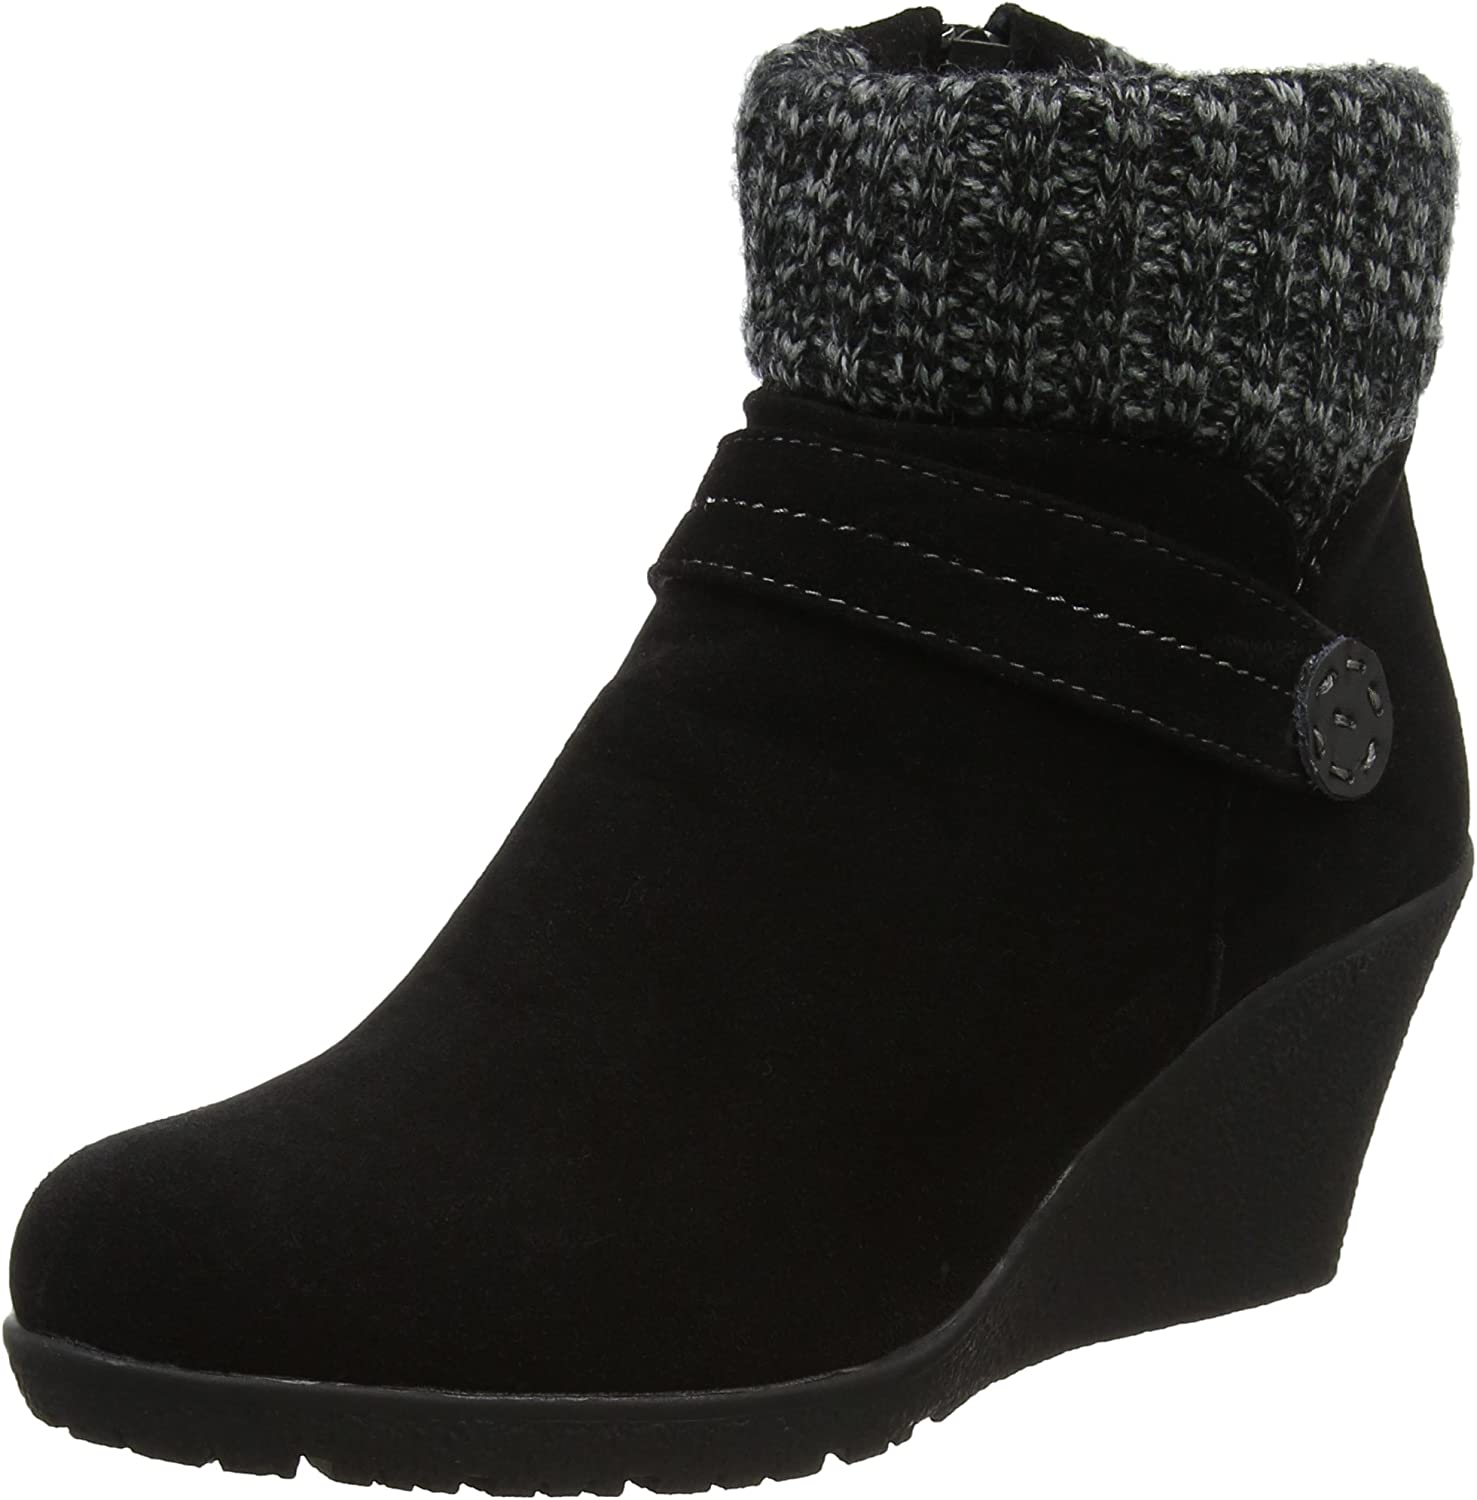 Joe Browns Womens Wedged Ankle Boot with Knitted Collar Black